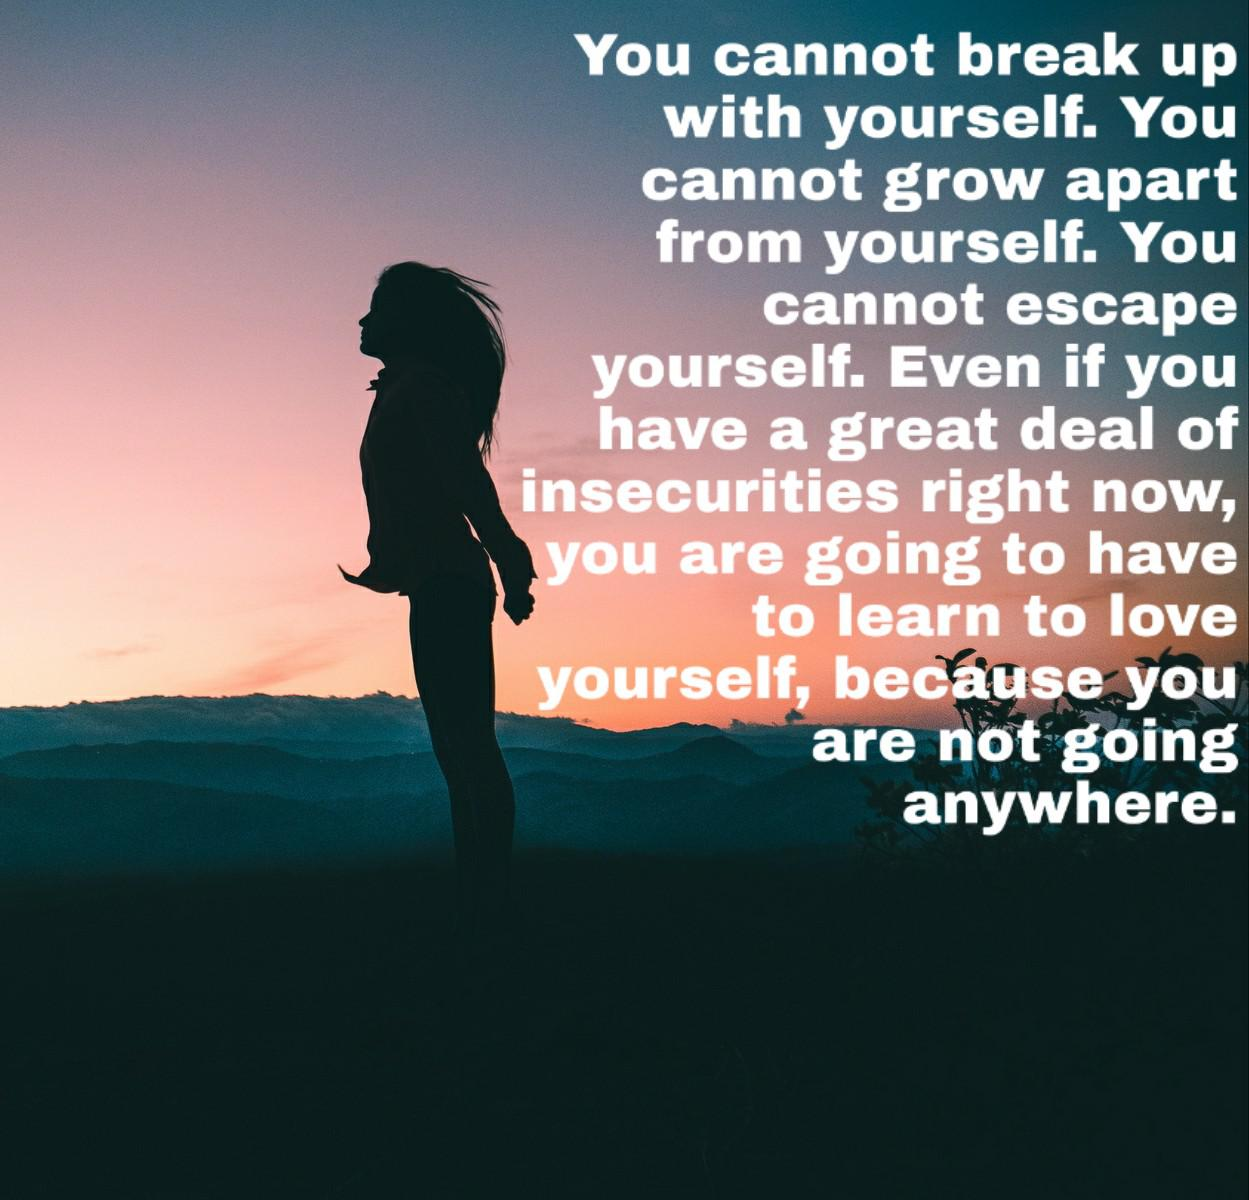 """You cannot break up with yourself…"" by Holly Riordan [1249 x 1200]"